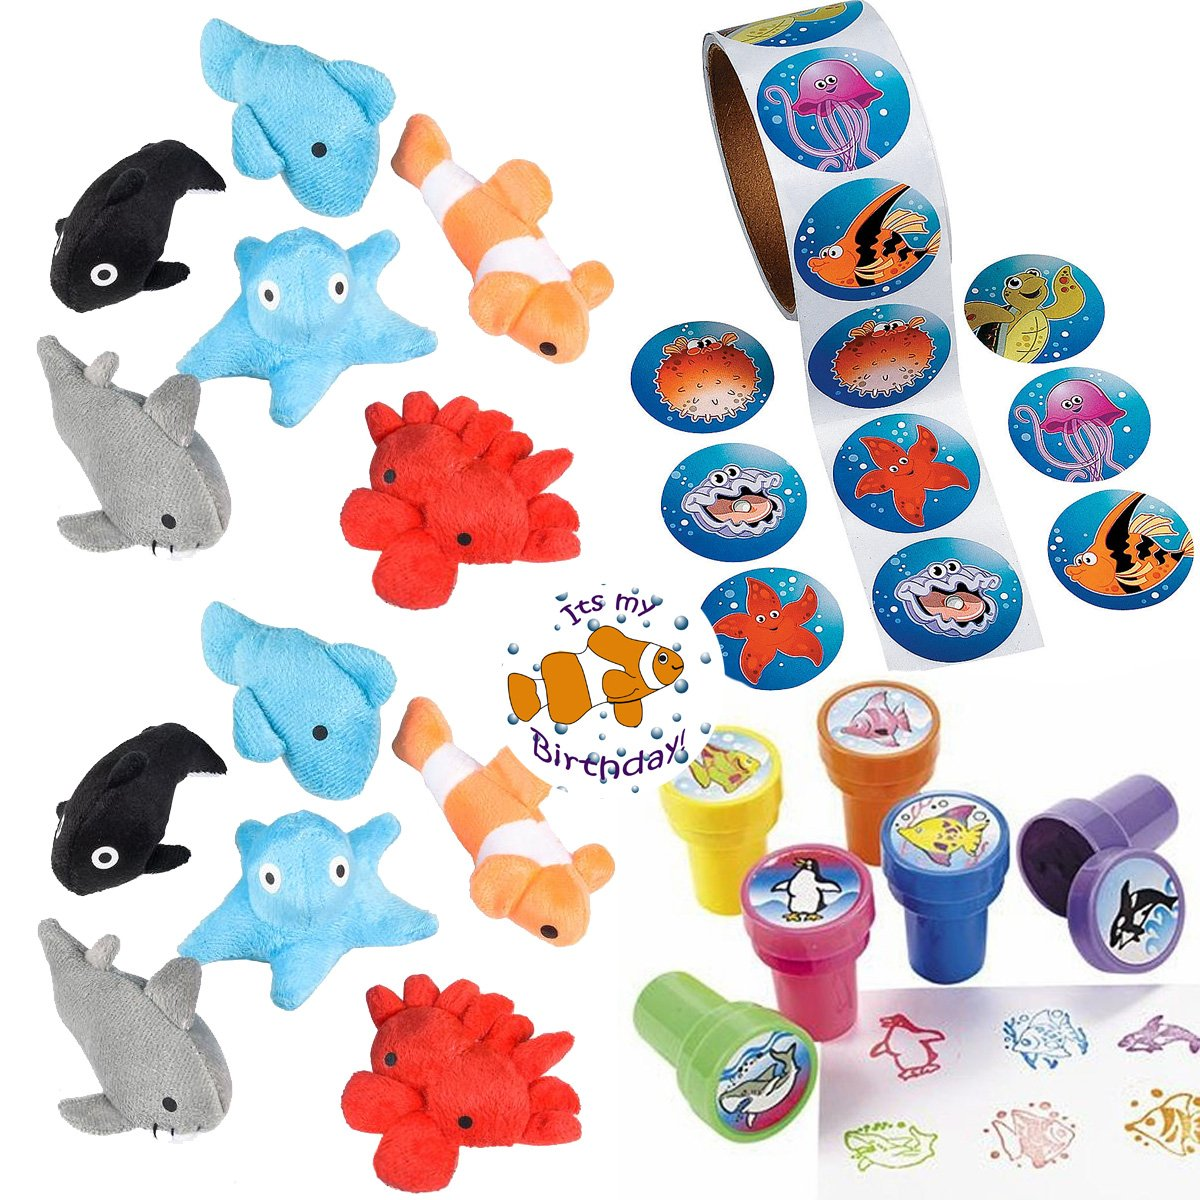 Sea Animal Party Favors 24 - Plush Mini Ocean Animals (24), Sea Creature Stampers (24), Ocean/Fish Stickers (Roll 100) a Birthday Sticker (Total 149 Pieces)